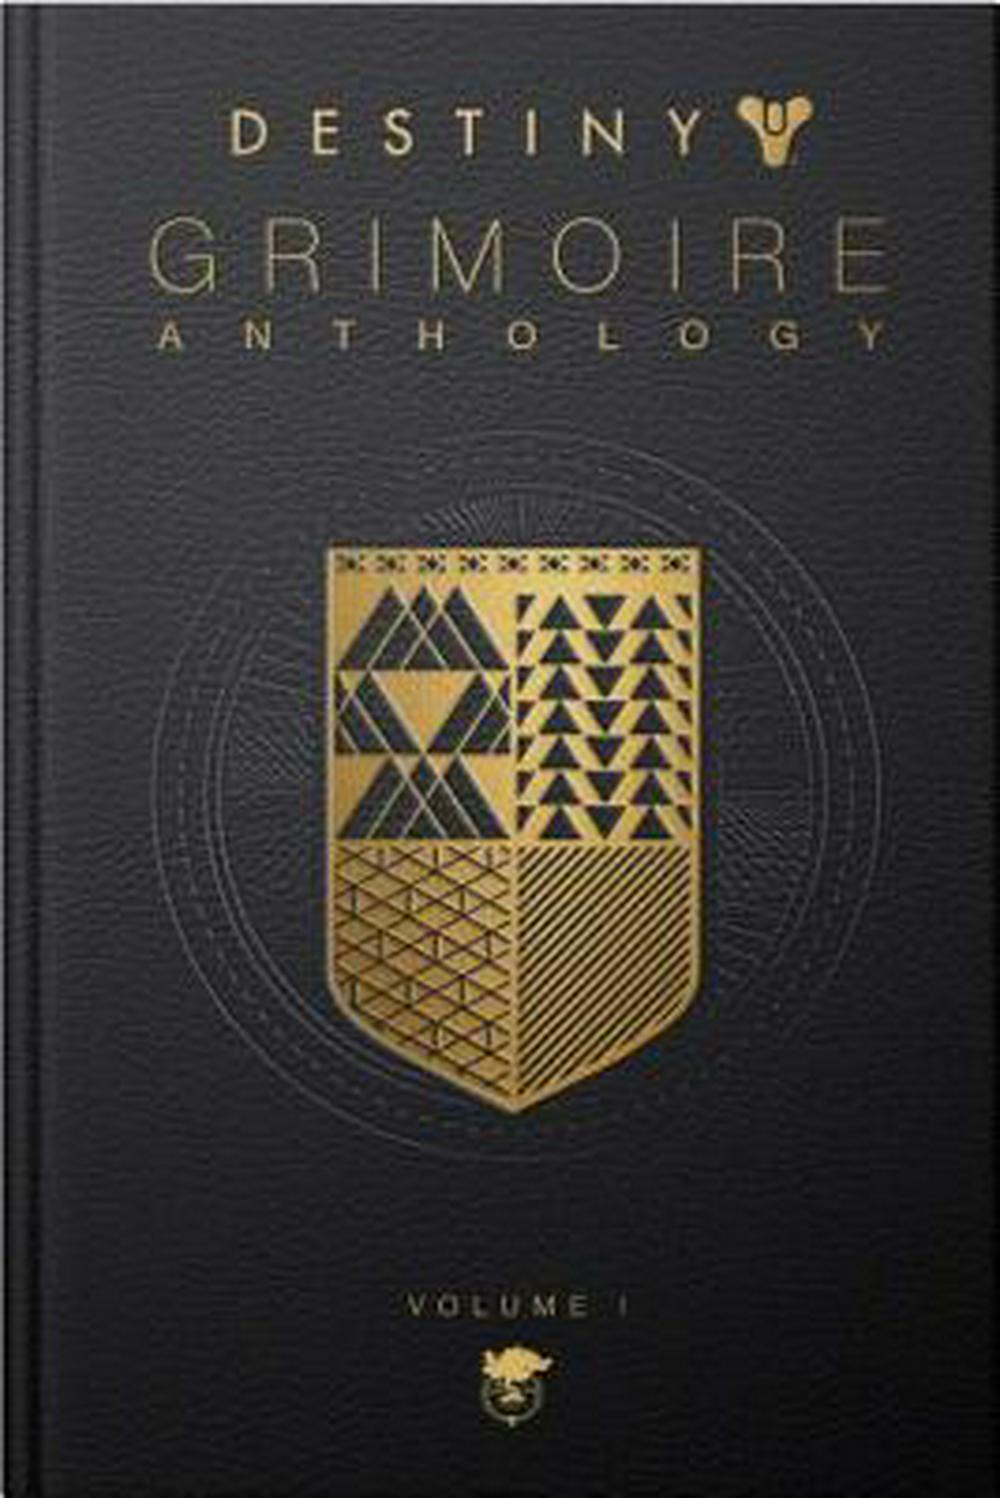 Destiny Grimoire Anthology, Vol. I